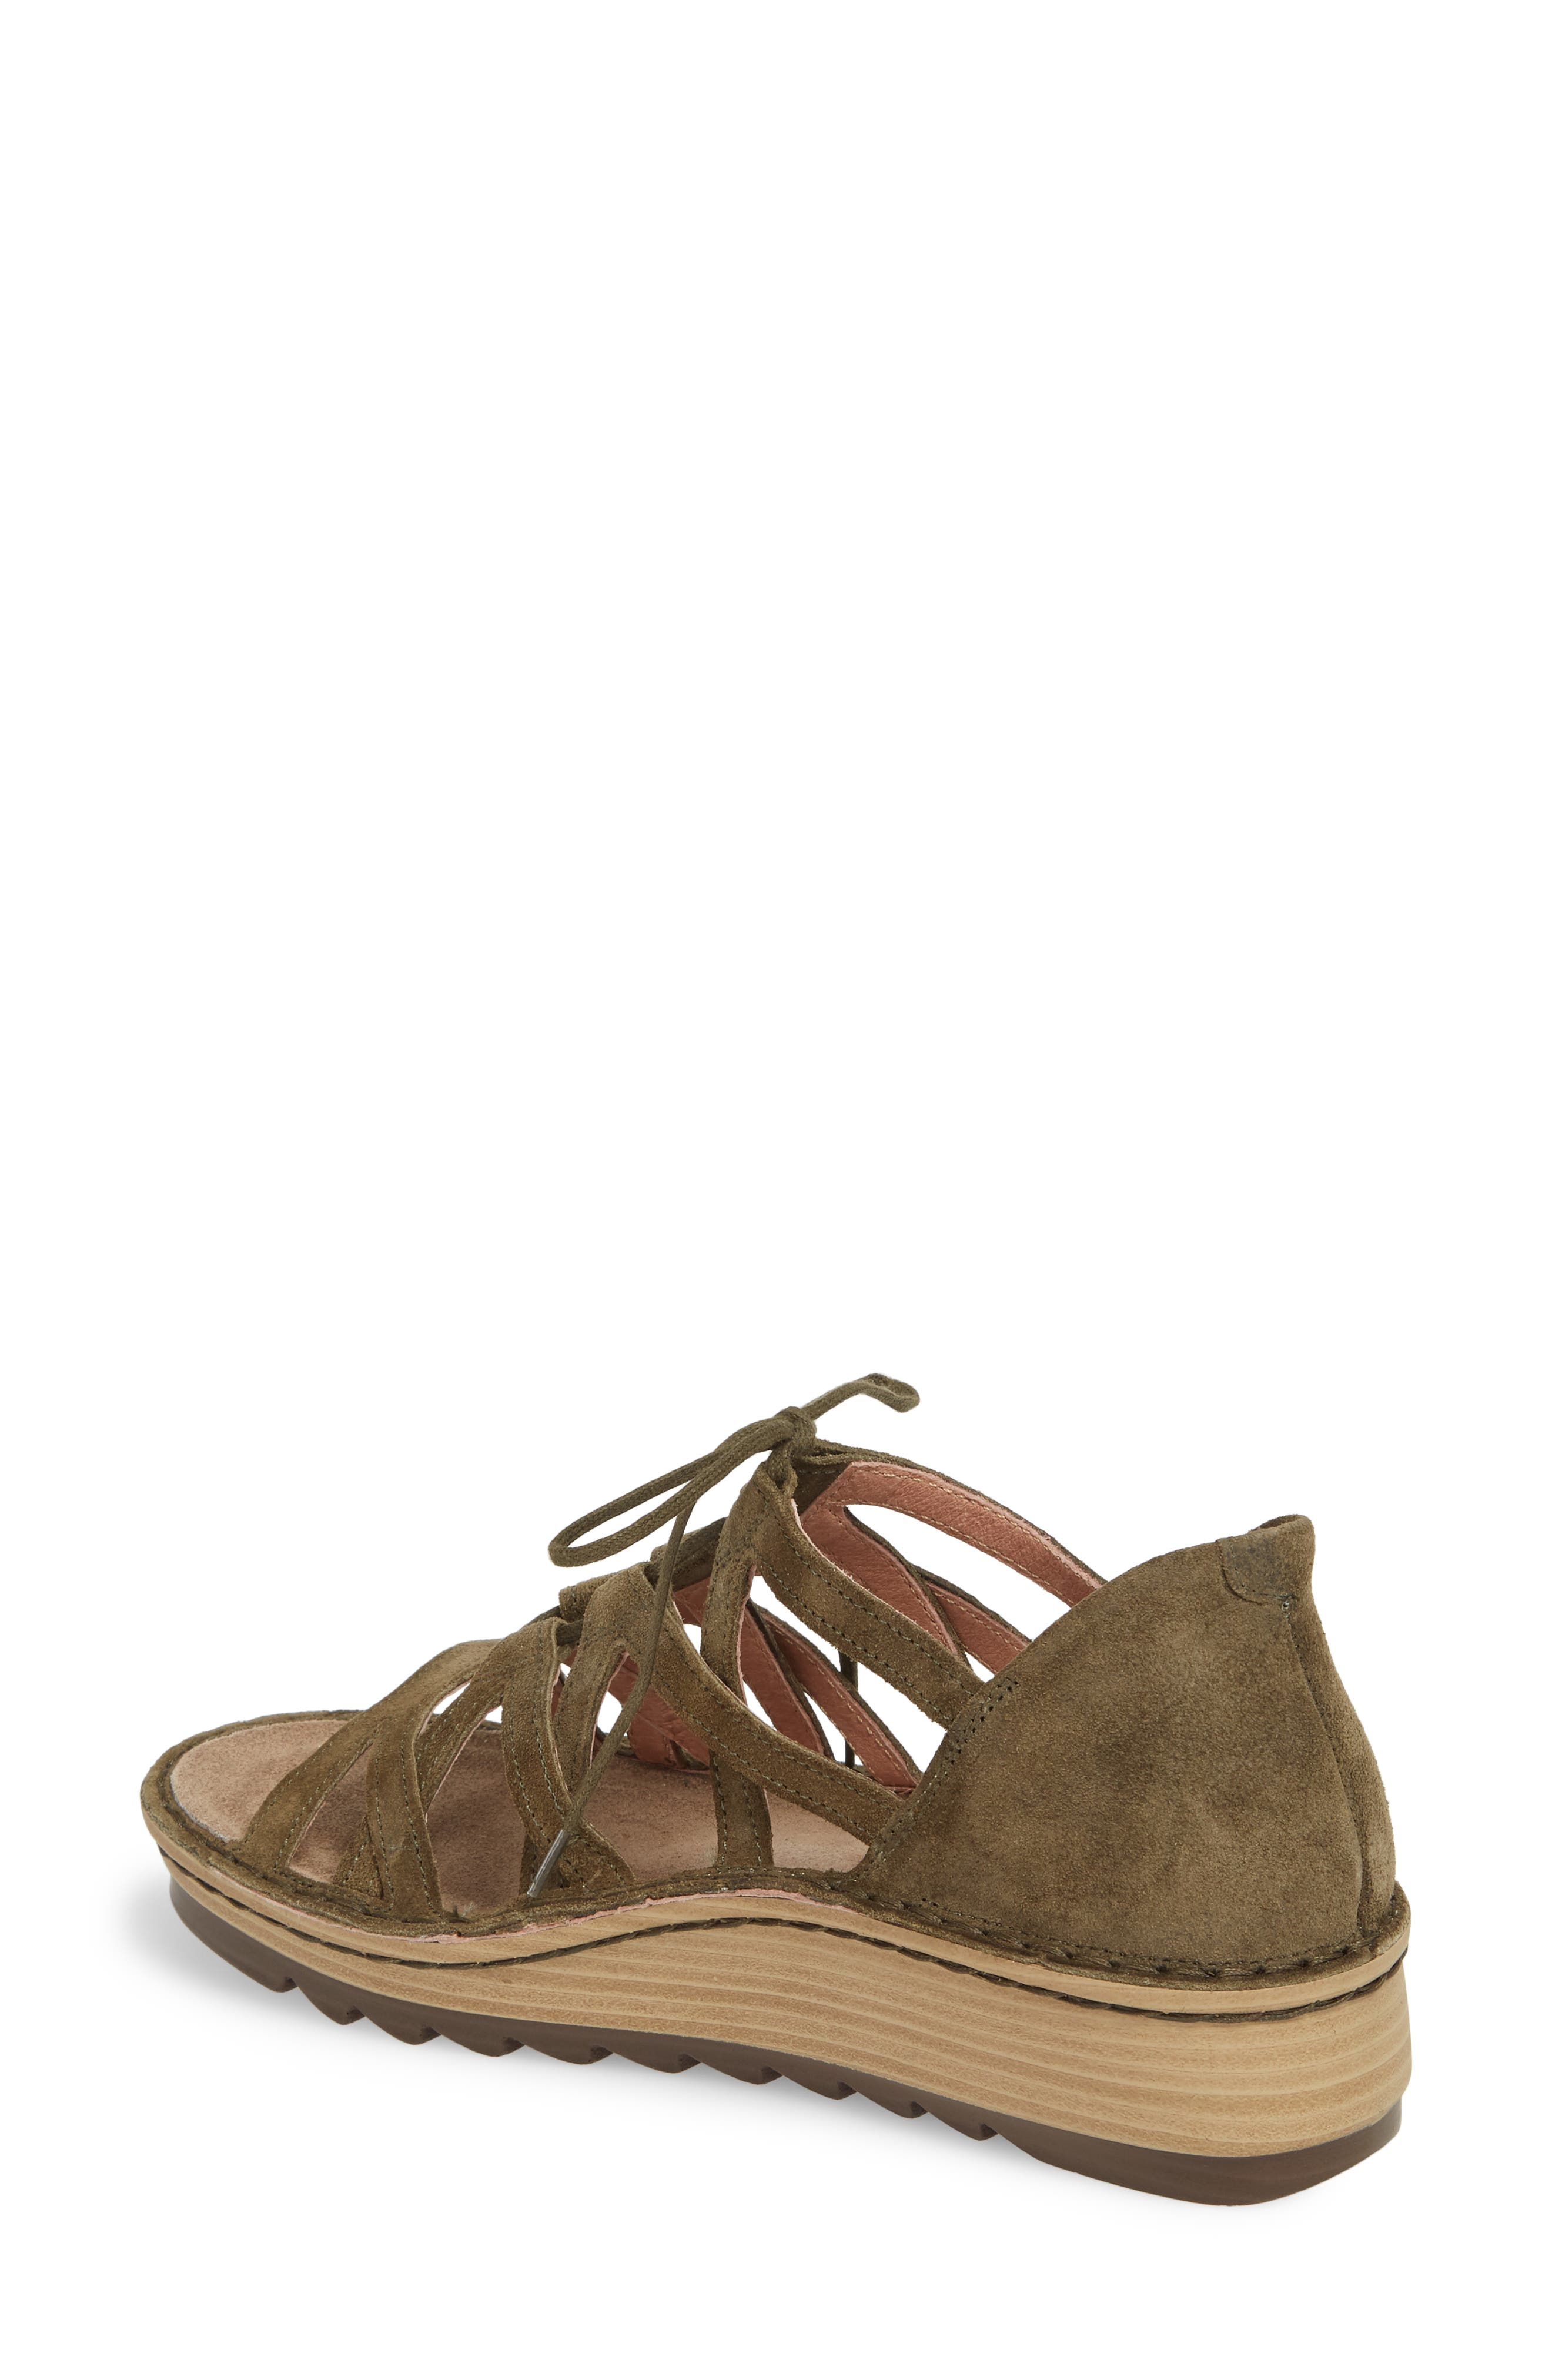 Yarrow Sandal,                             Alternate thumbnail 2, color,                             Oily Olive Suede